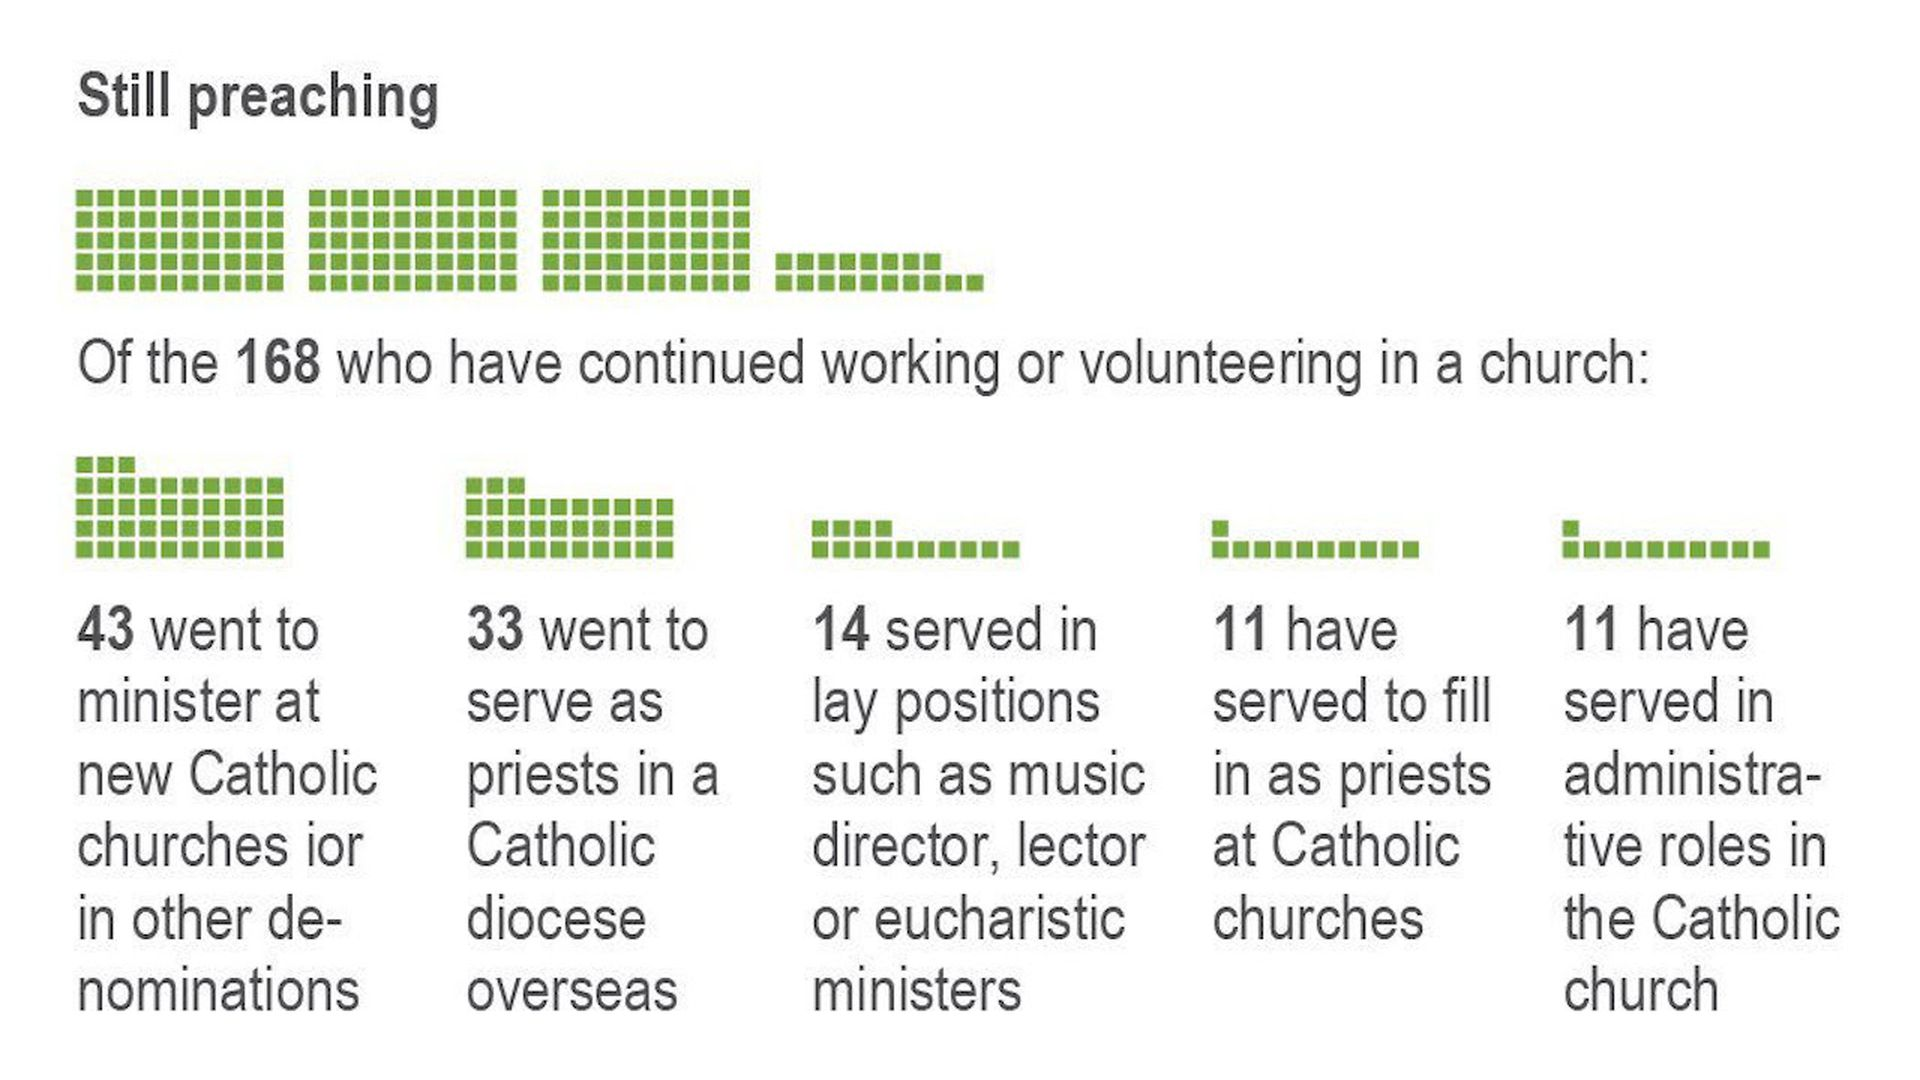 Graphic showing where accused Catholic clergy members are working today